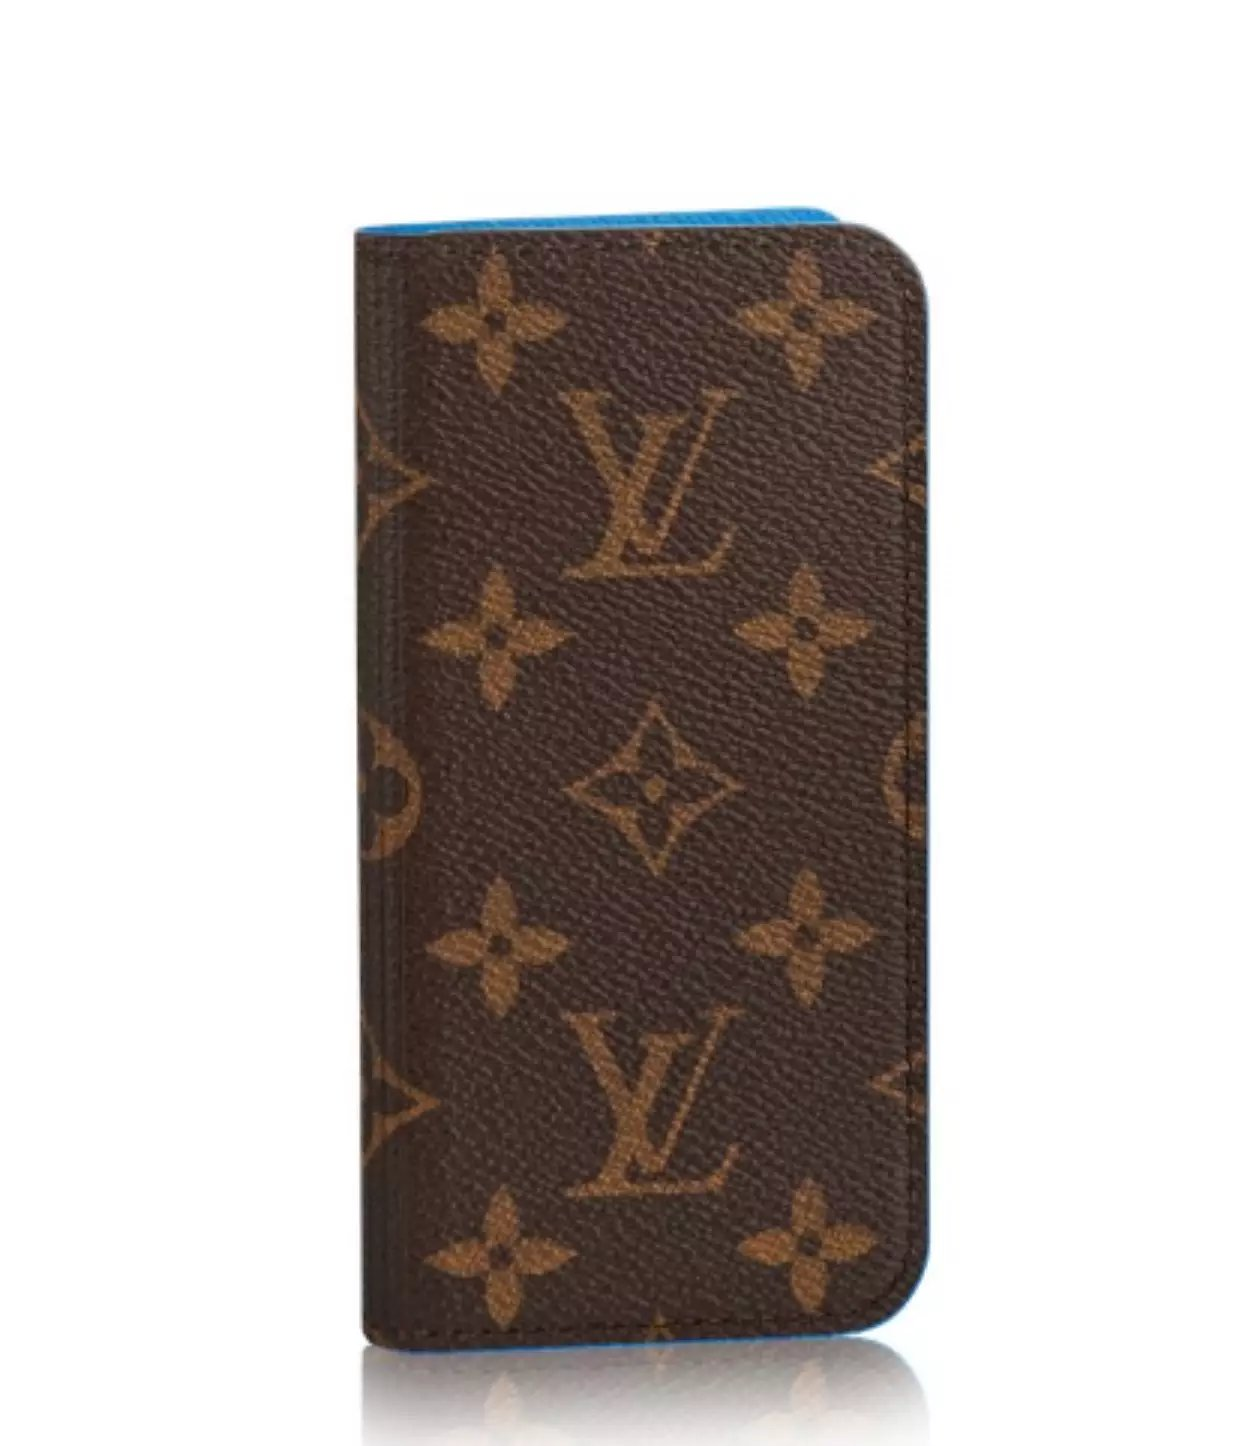 iphone gummihülle iphone hülle leder Louis Vuitton iphone 8 hüllen iphone 8 hülle 8lbst basteln iphone 8 hülle mädchen iphone 8 zubehör 8t günstige iphone hüllen handyhülle s2 8 schutzhülle